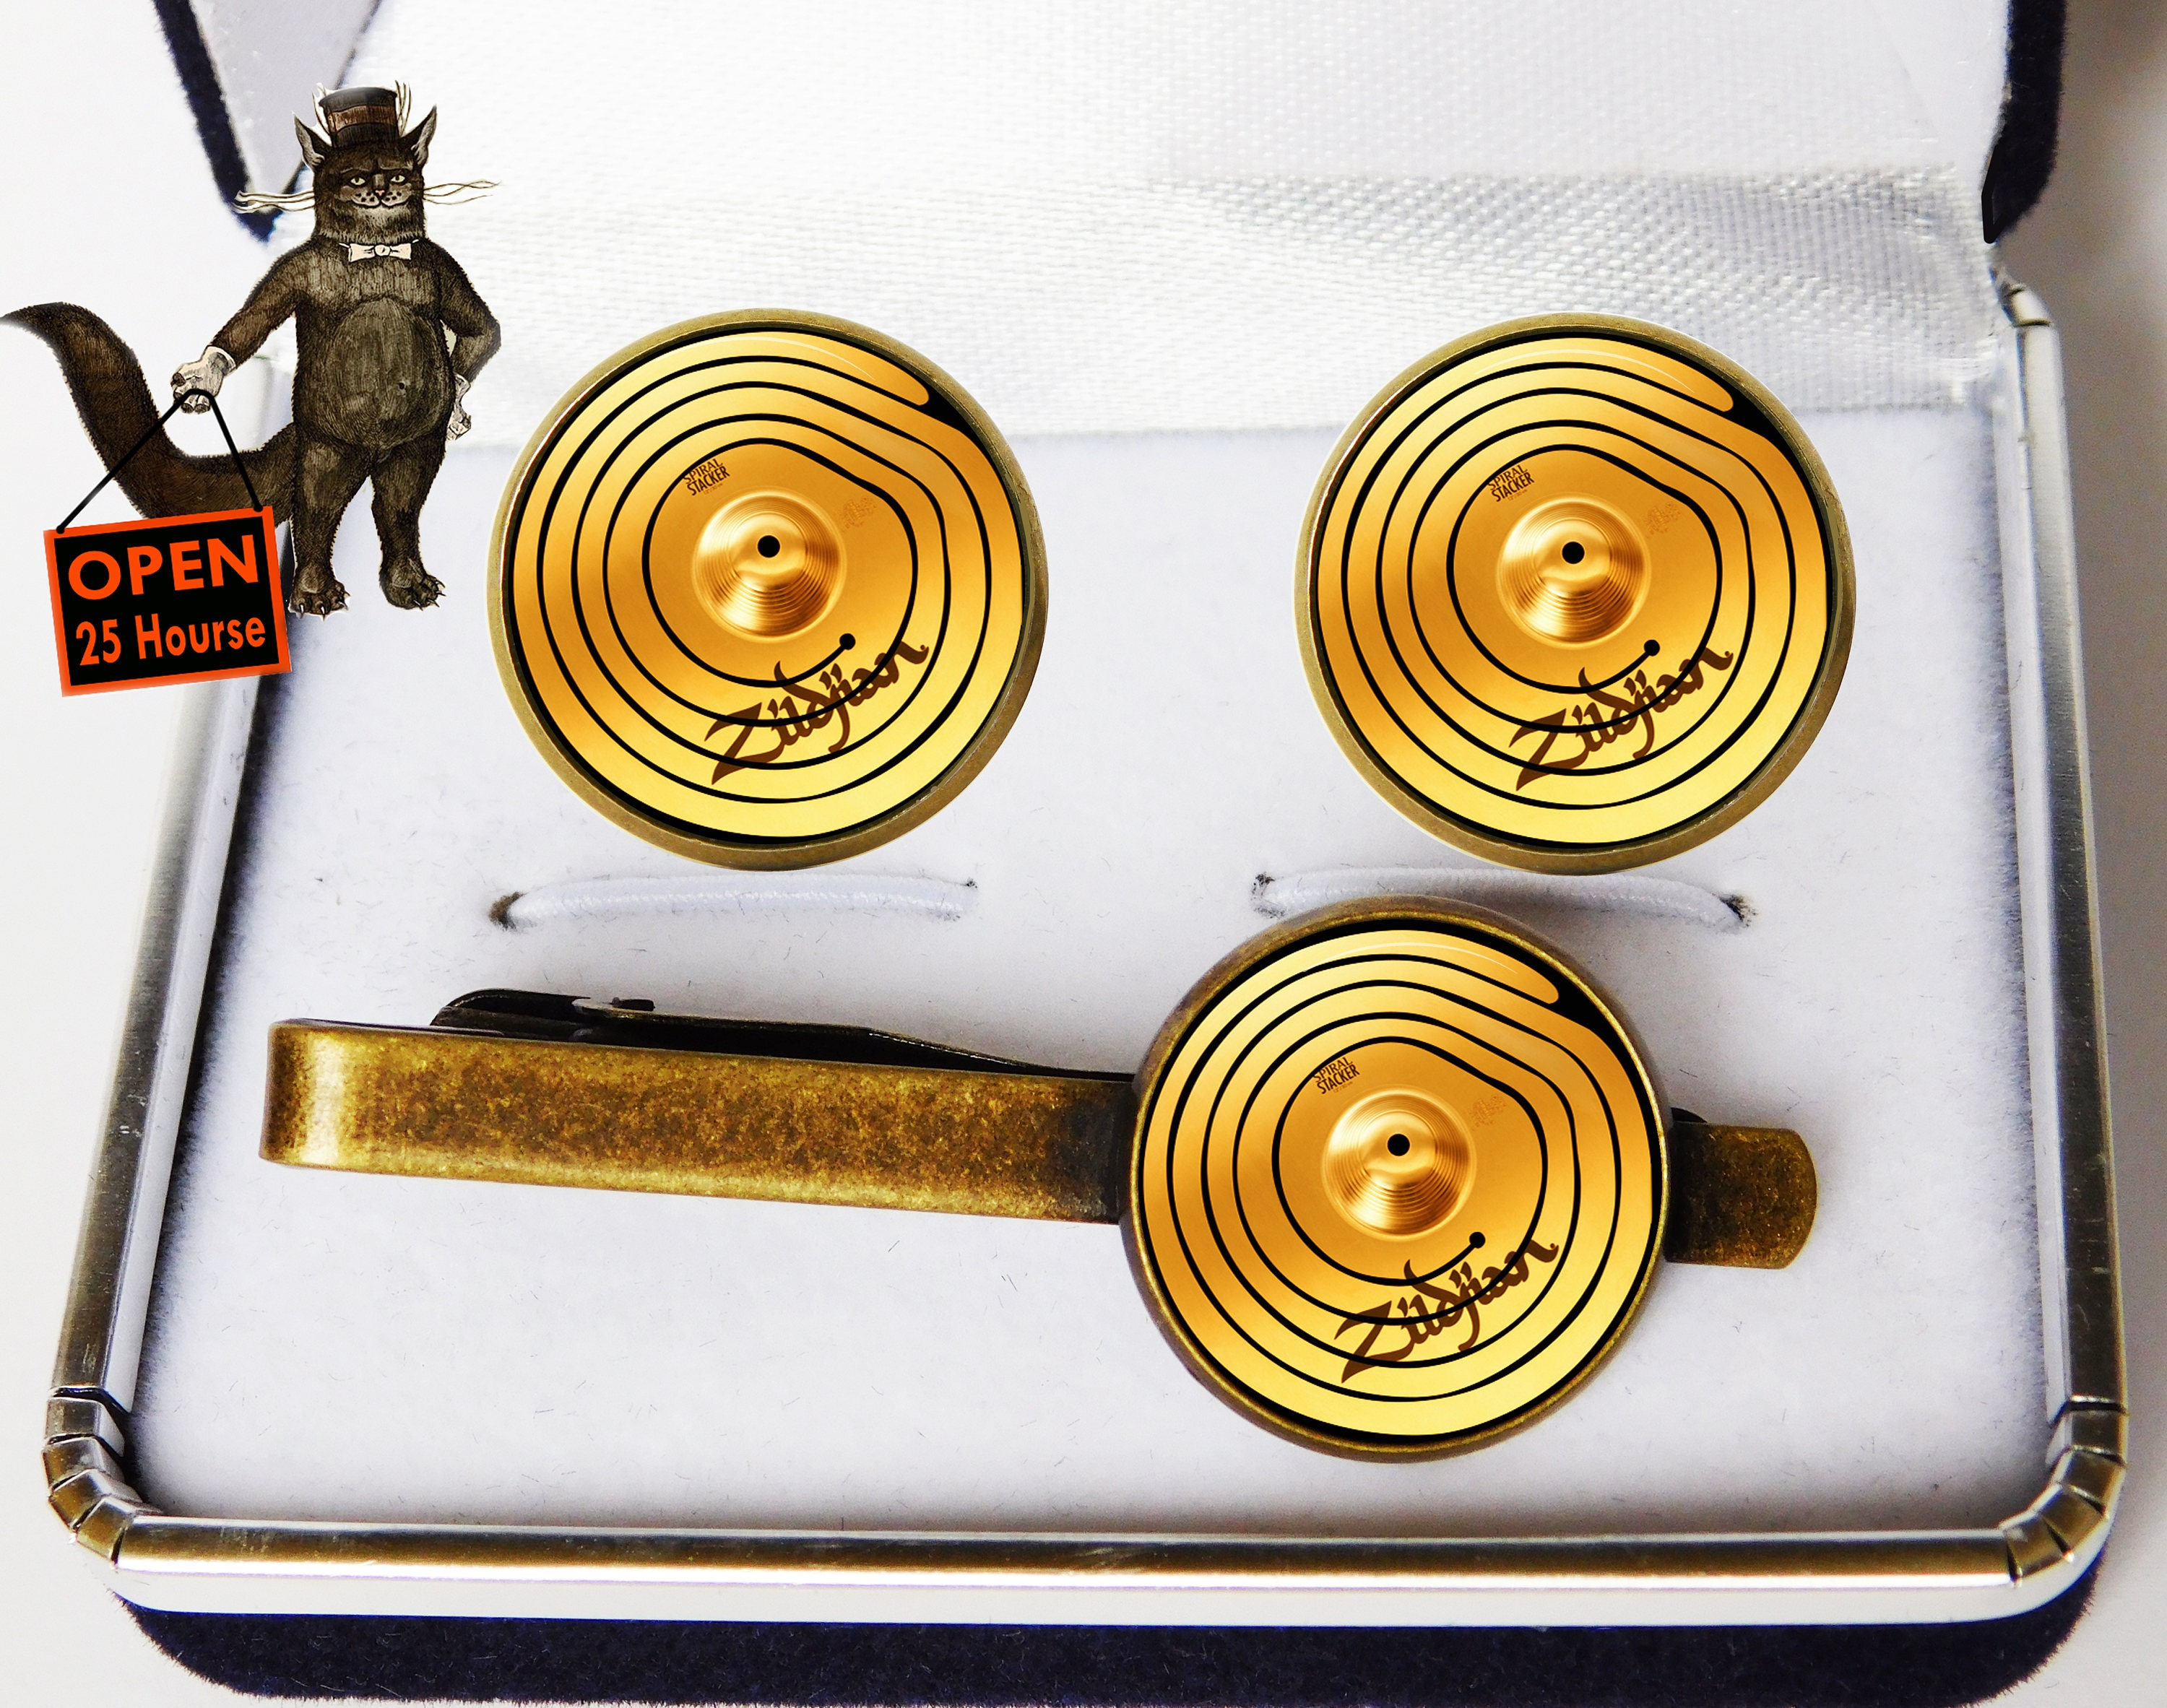 Drummer Cymbals Set cufflinks and tie clip, drummer gifts, gifts for drummers, drummer